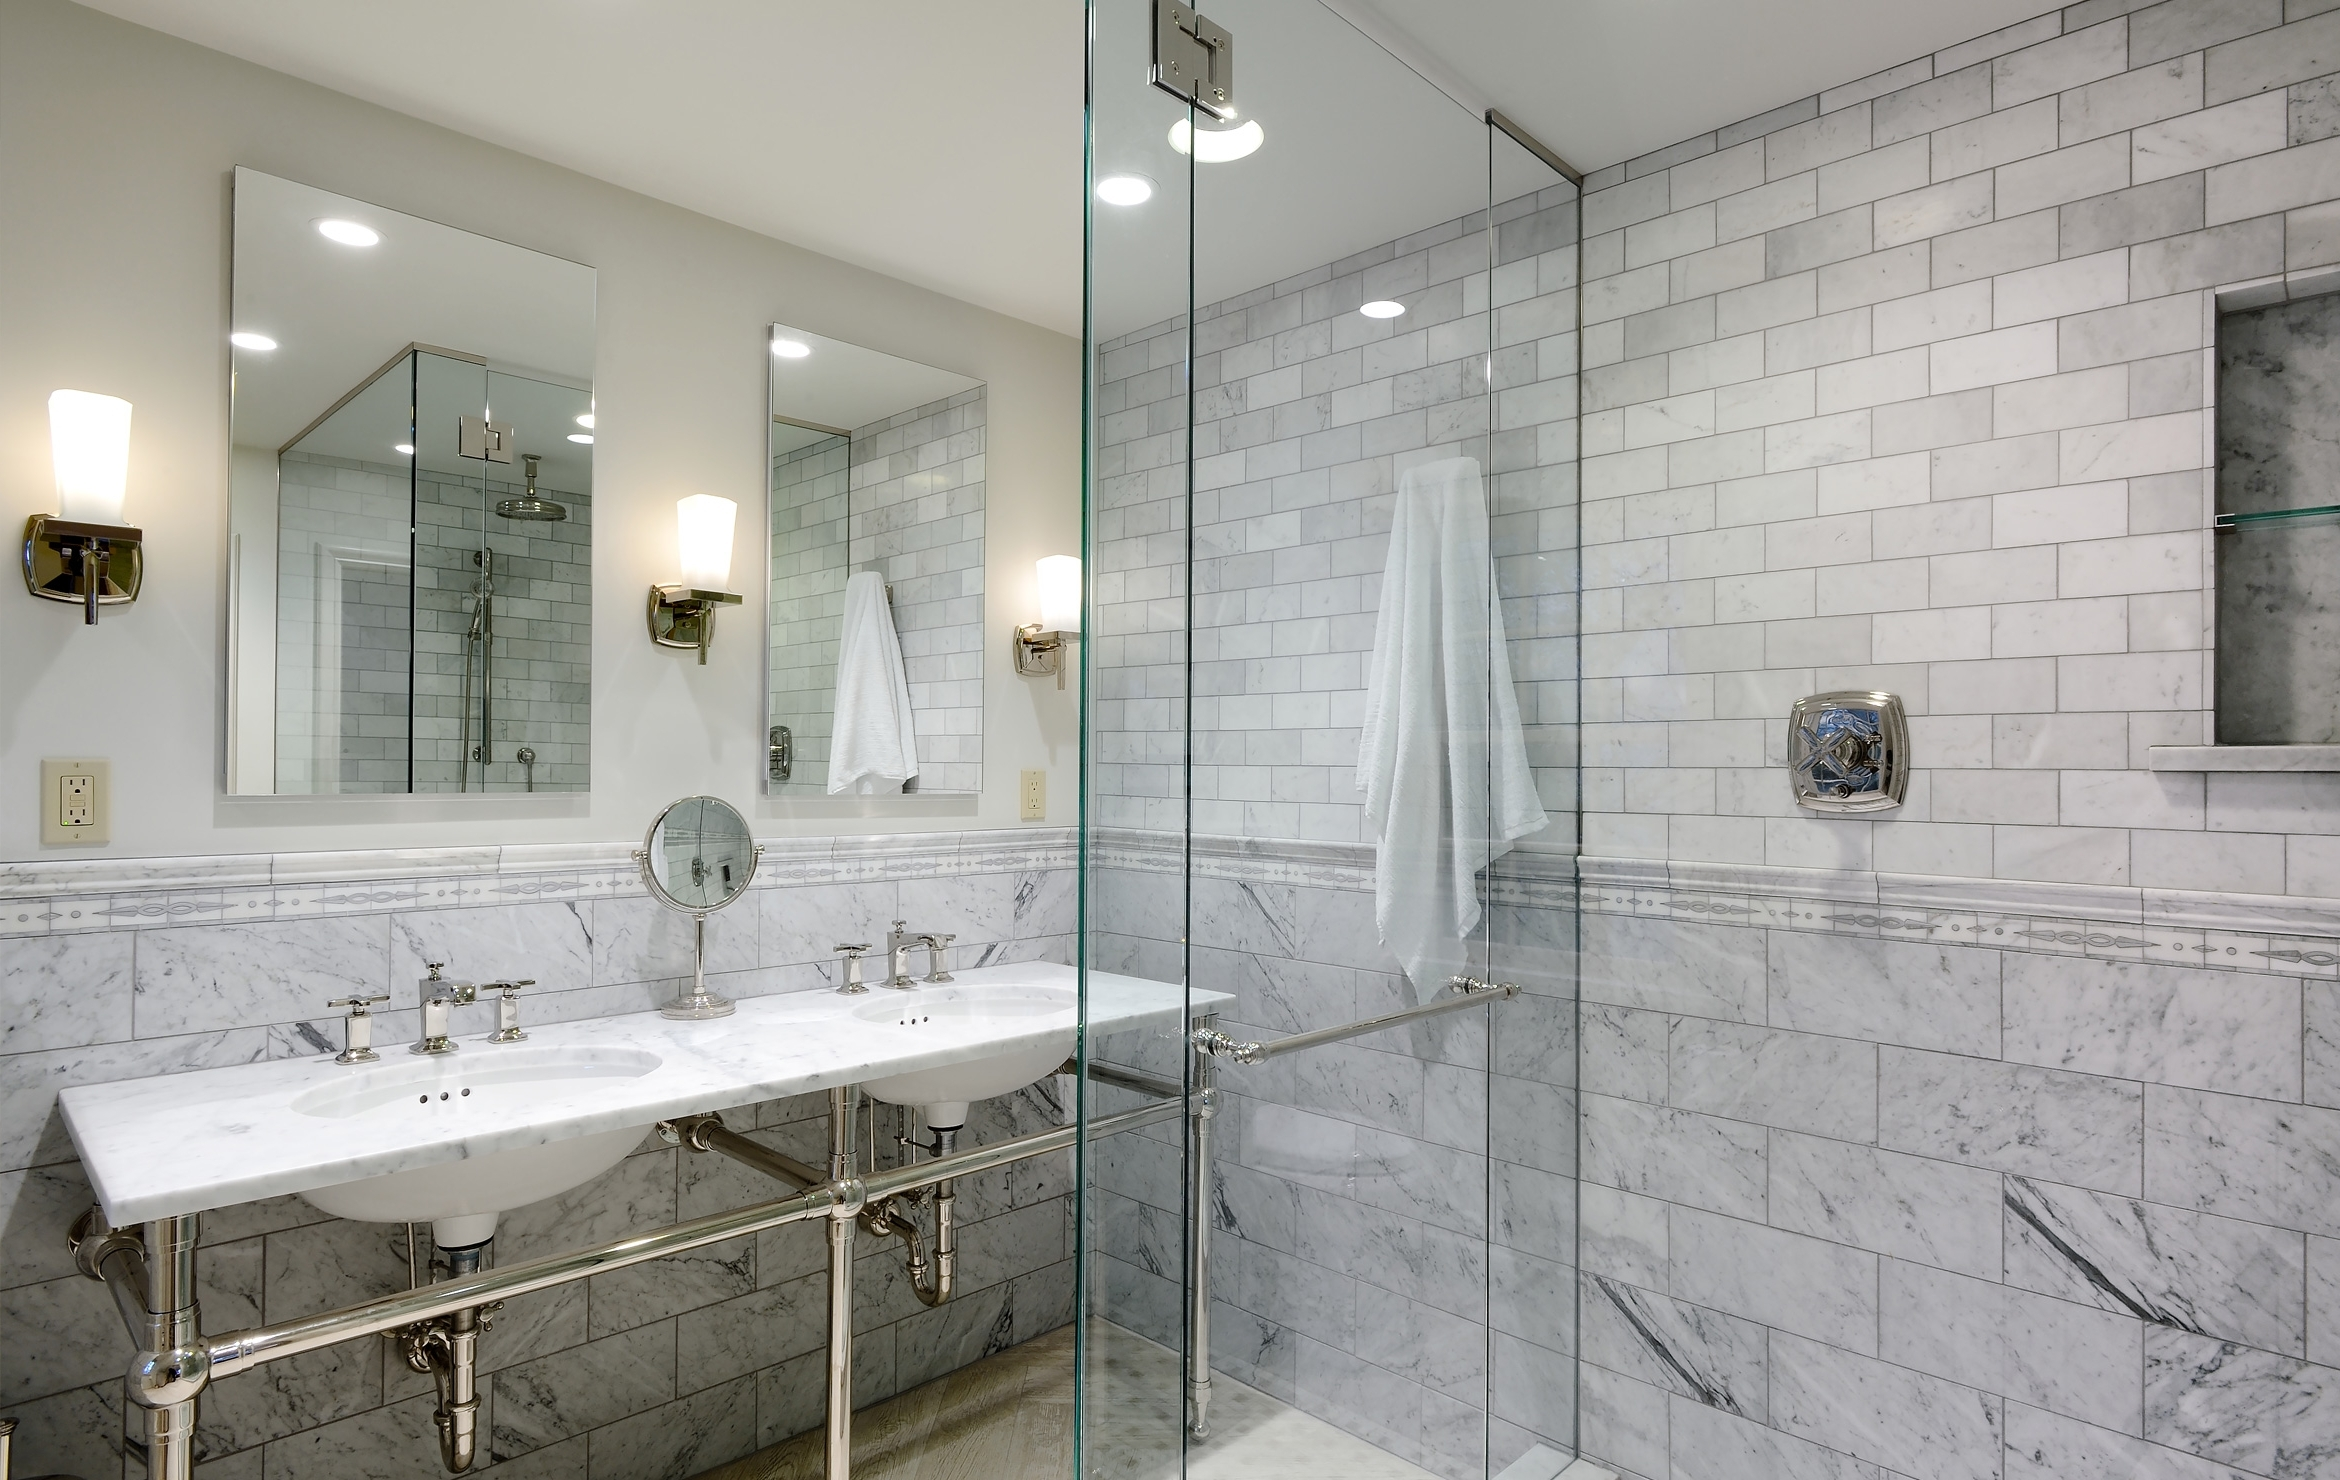 100 Bathroom Remodeling Southwestern Remodeling Wichita 30 Top Bathroom Remodeling Ideas For